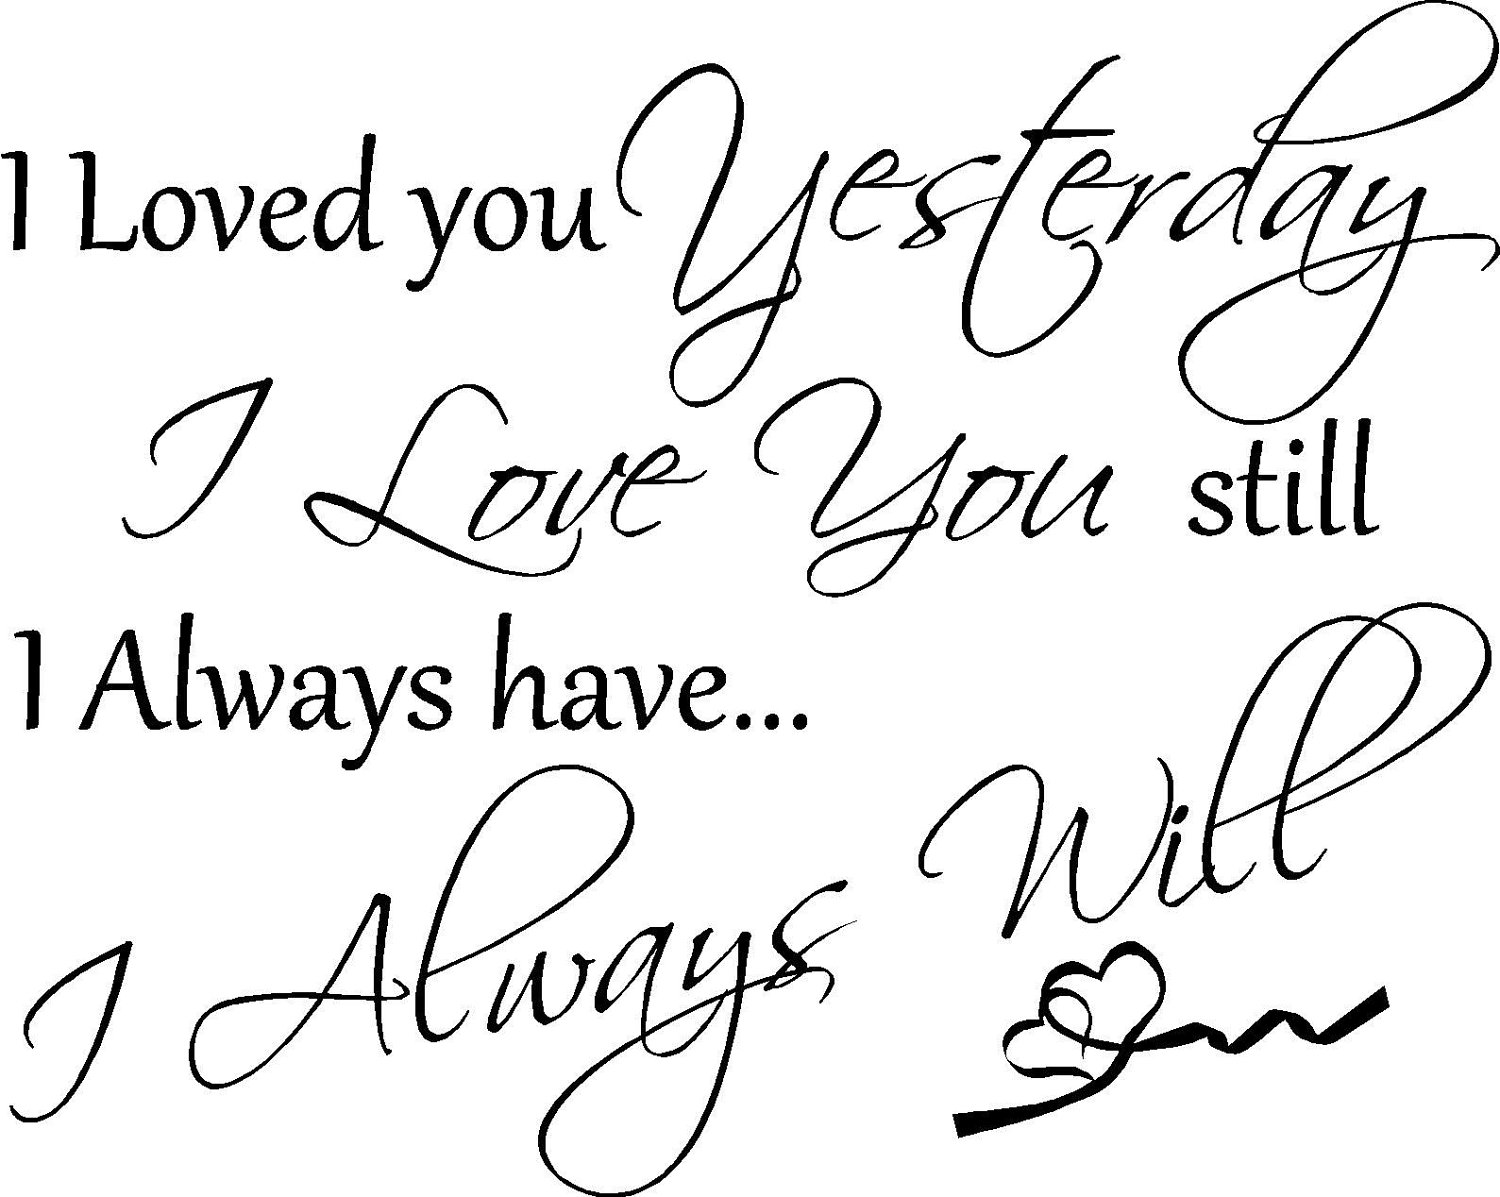 I Will Always Love You Quotes And Images : love-you-picture-quotes-quote-i-loved-you-yesterday-love-still ...